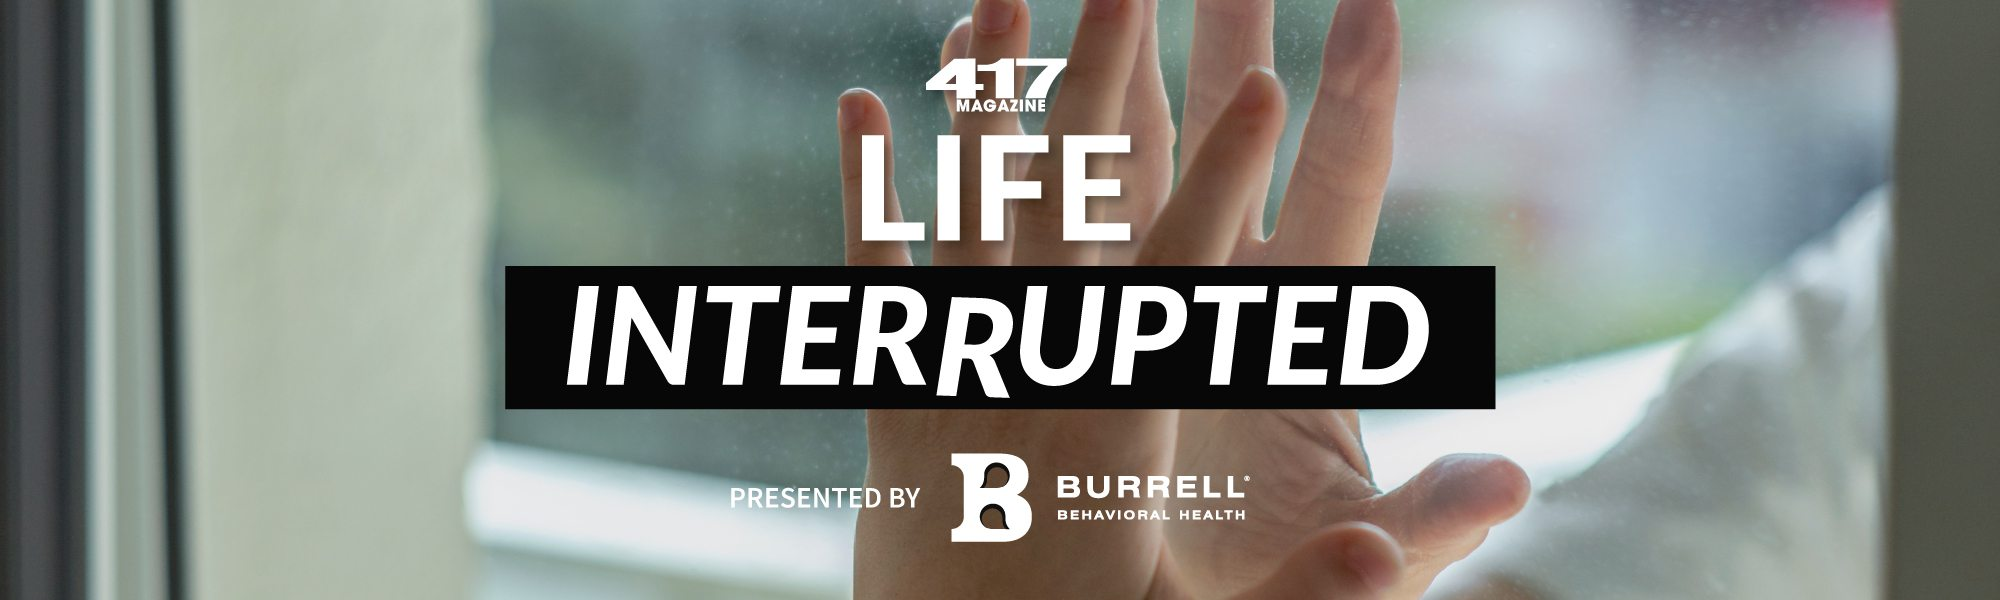 417 Magazine's Life Interrupted Video Series presented by Burrell Behavioral Health